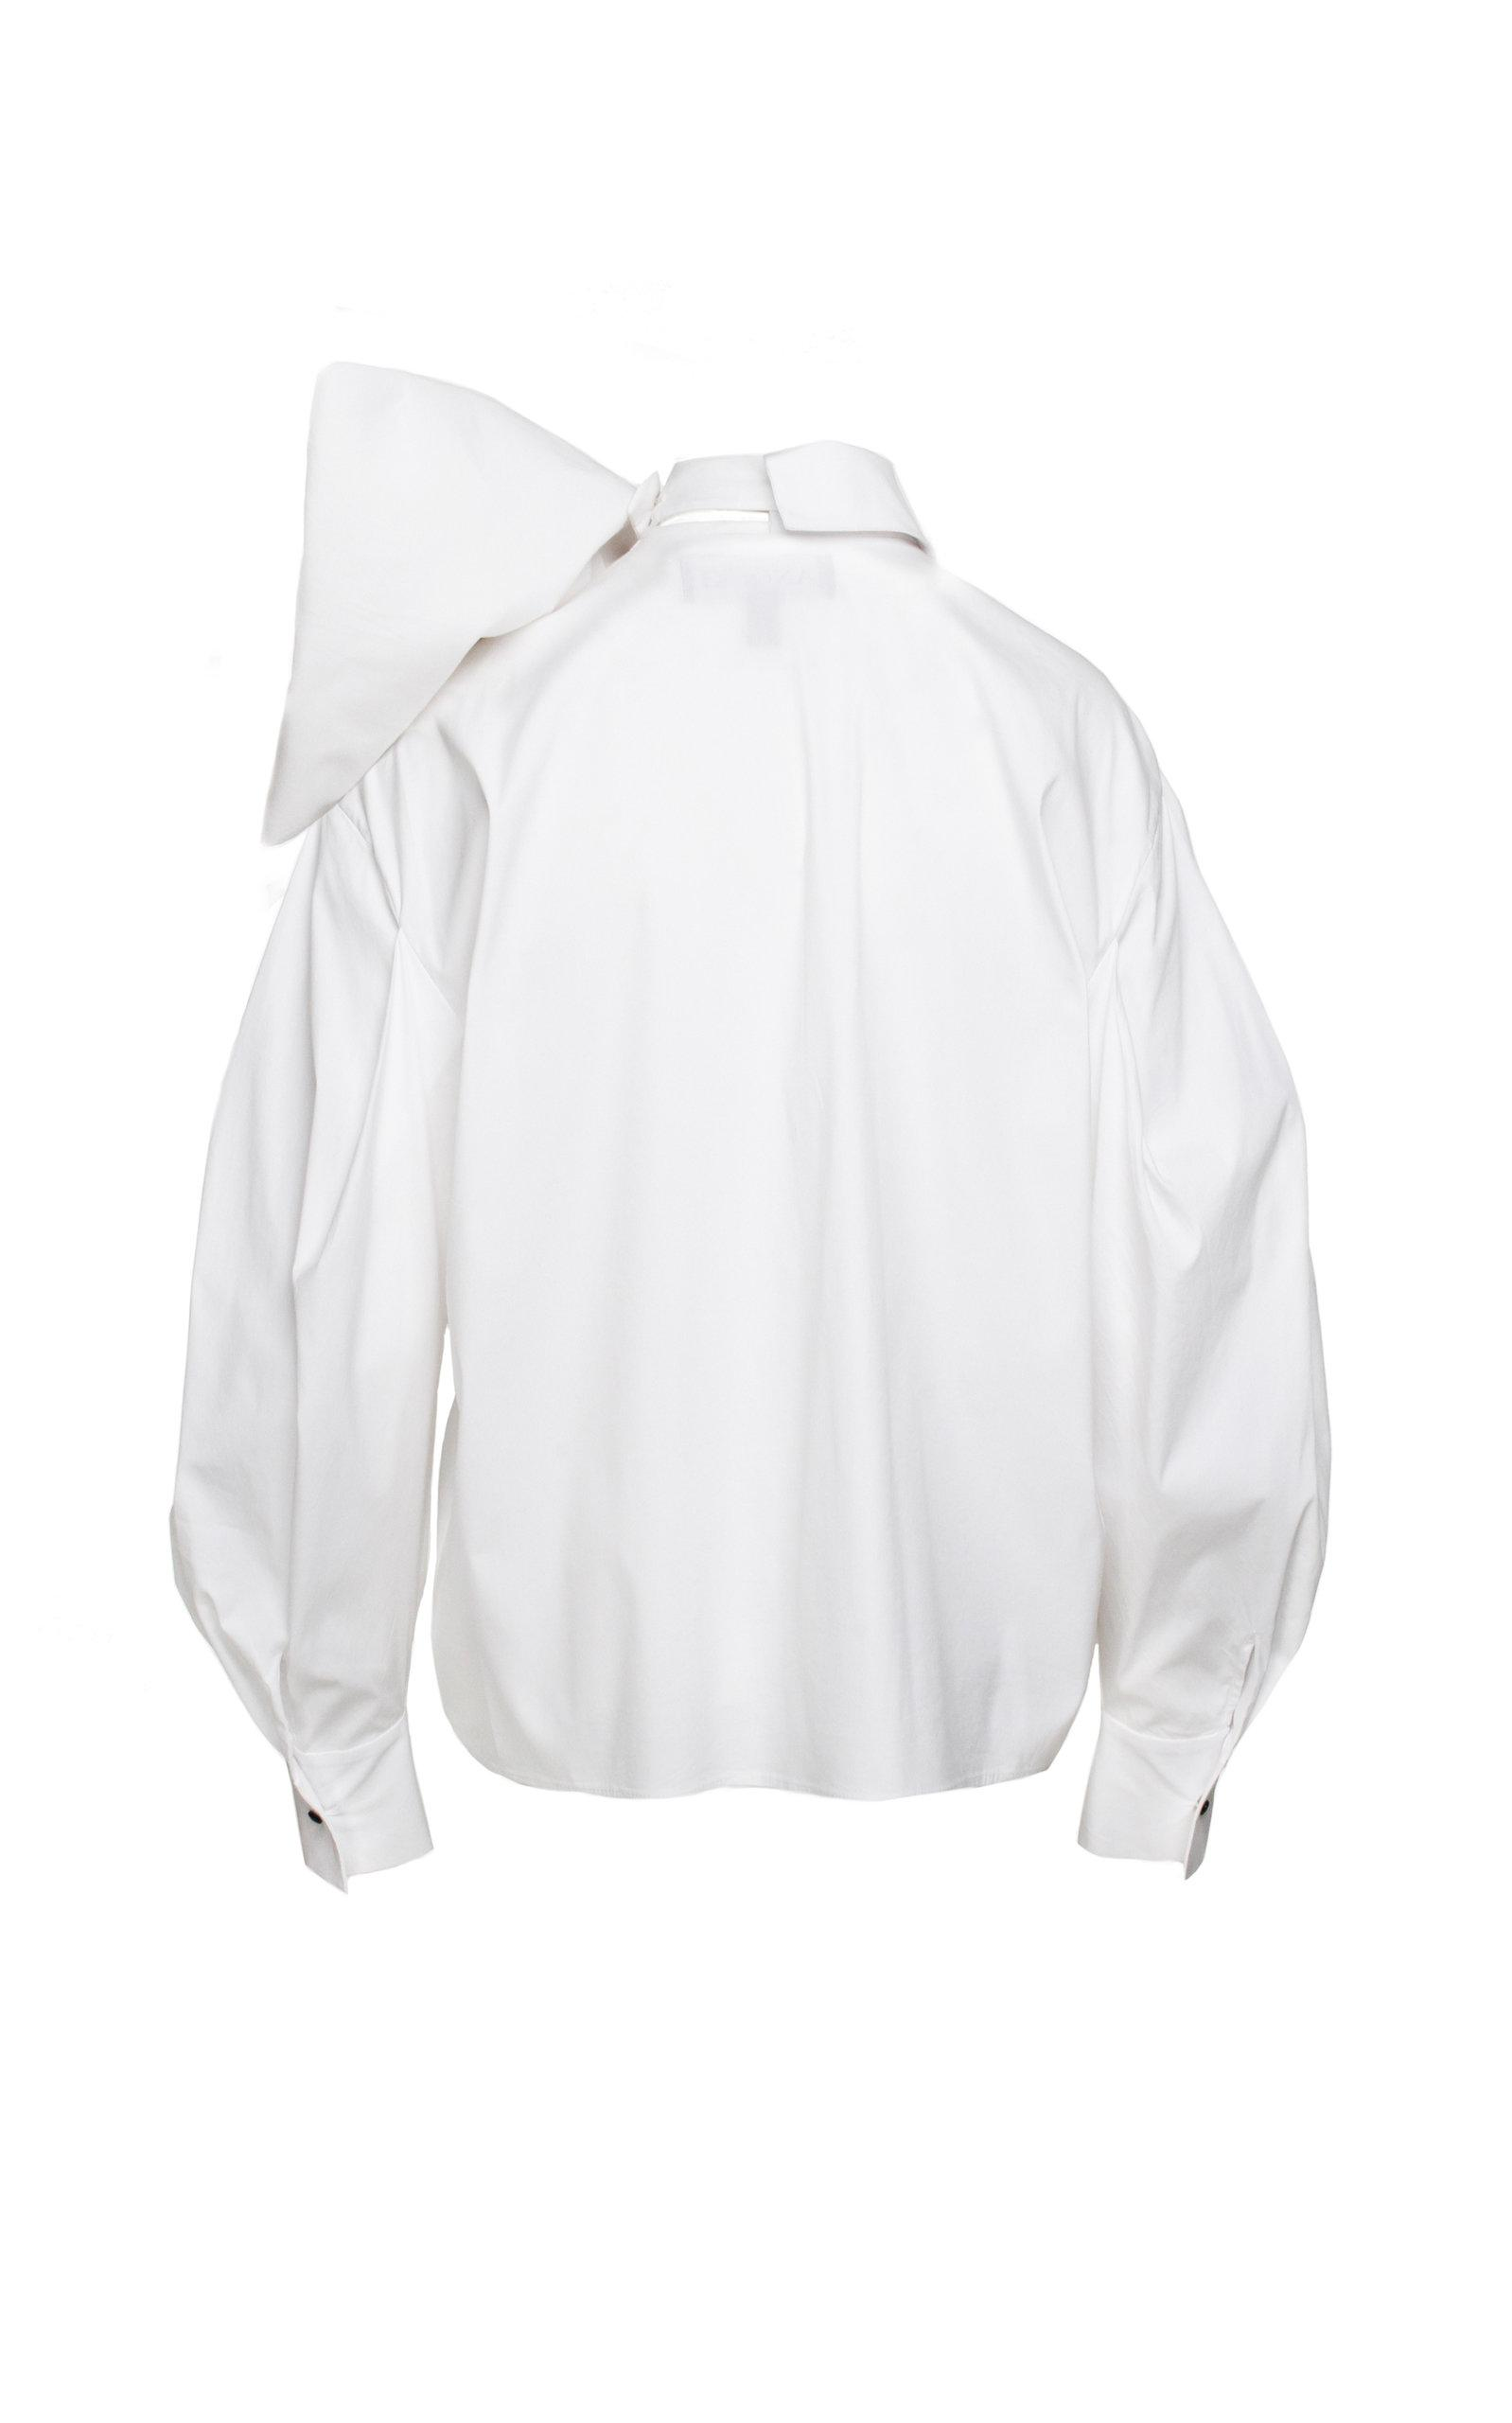 86911c9658561 Anouki - White Poplin Bow Accented Top - Lyst. View fullscreen